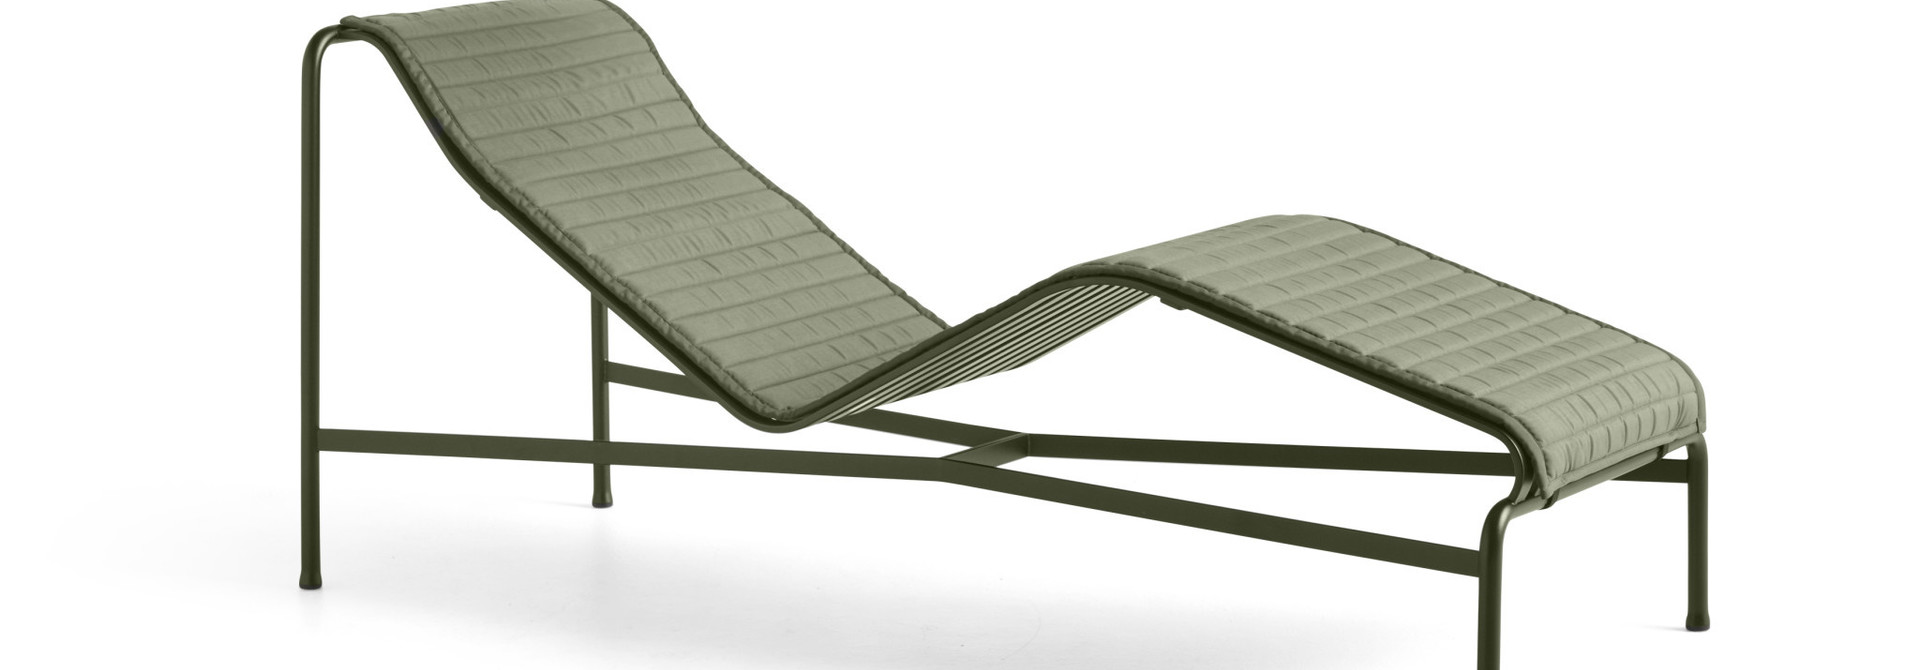 Palissade Chaise longue Quilted cushion